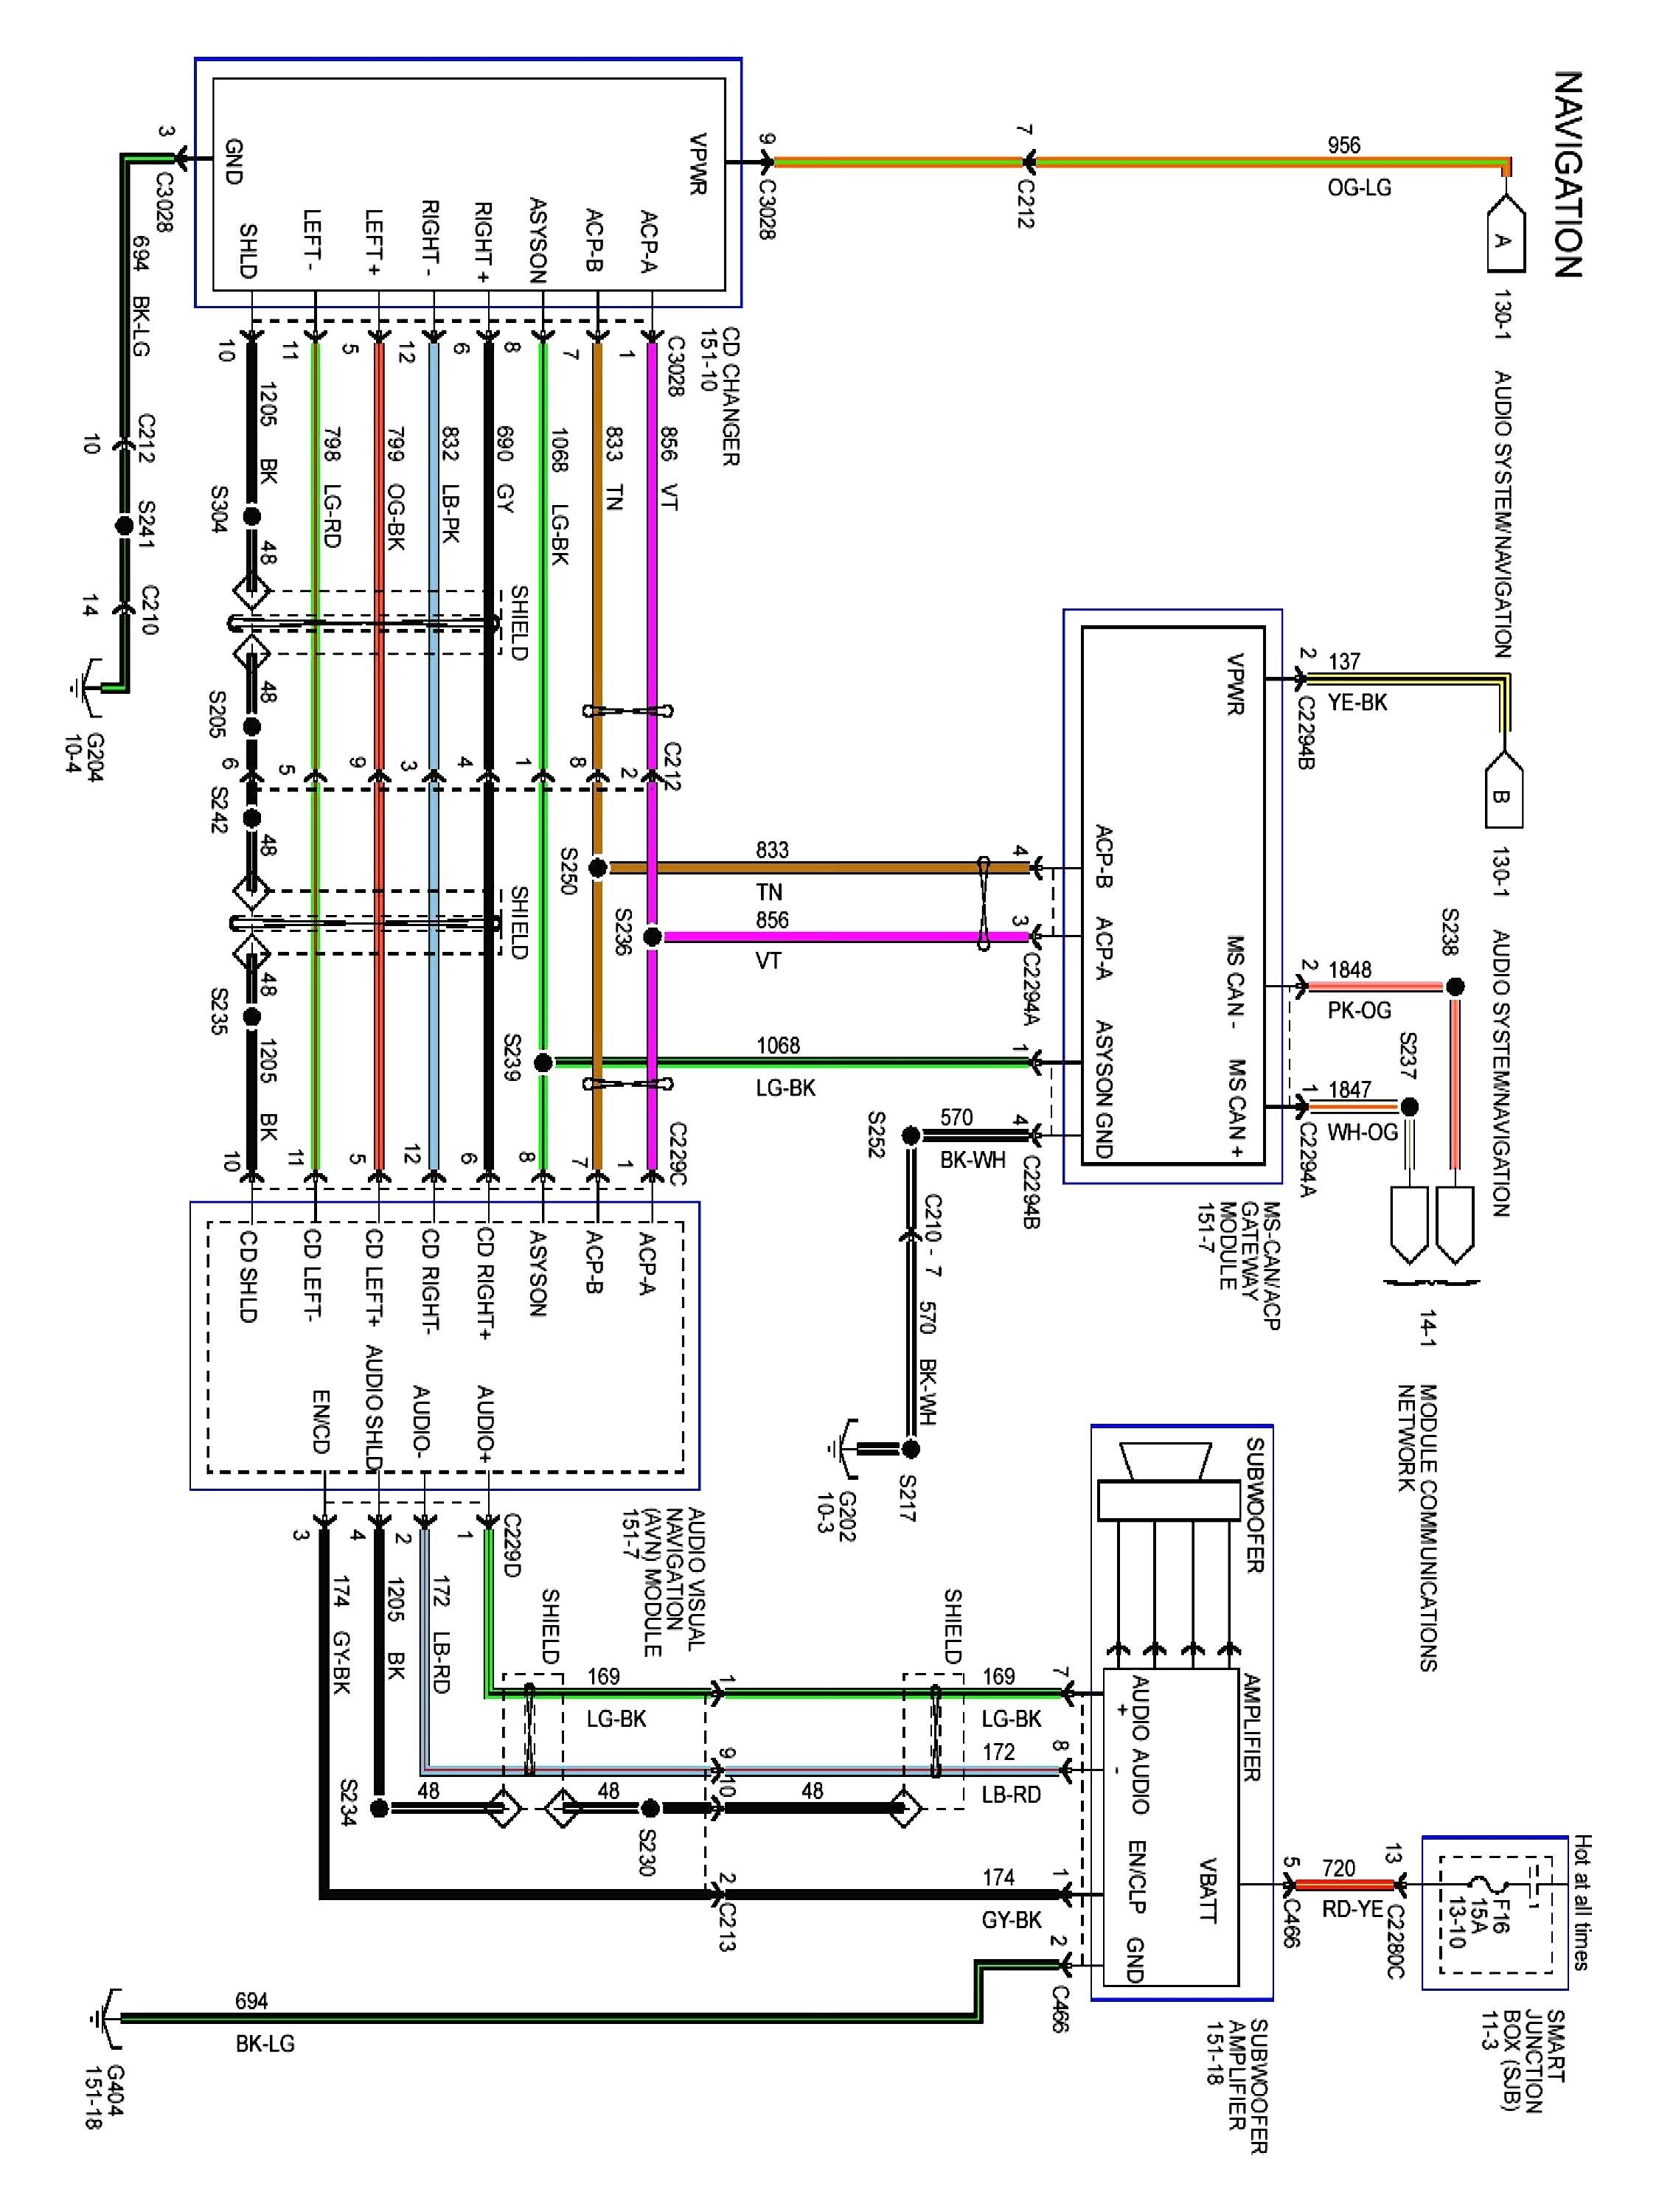 New 2011 Dodge Ram 1500 Radio Wiring Diagram Diagram Diagramsample Diagramtemplate Wiringd Ford Expedition Electrical Wiring Diagram Trailer Wiring Diagram